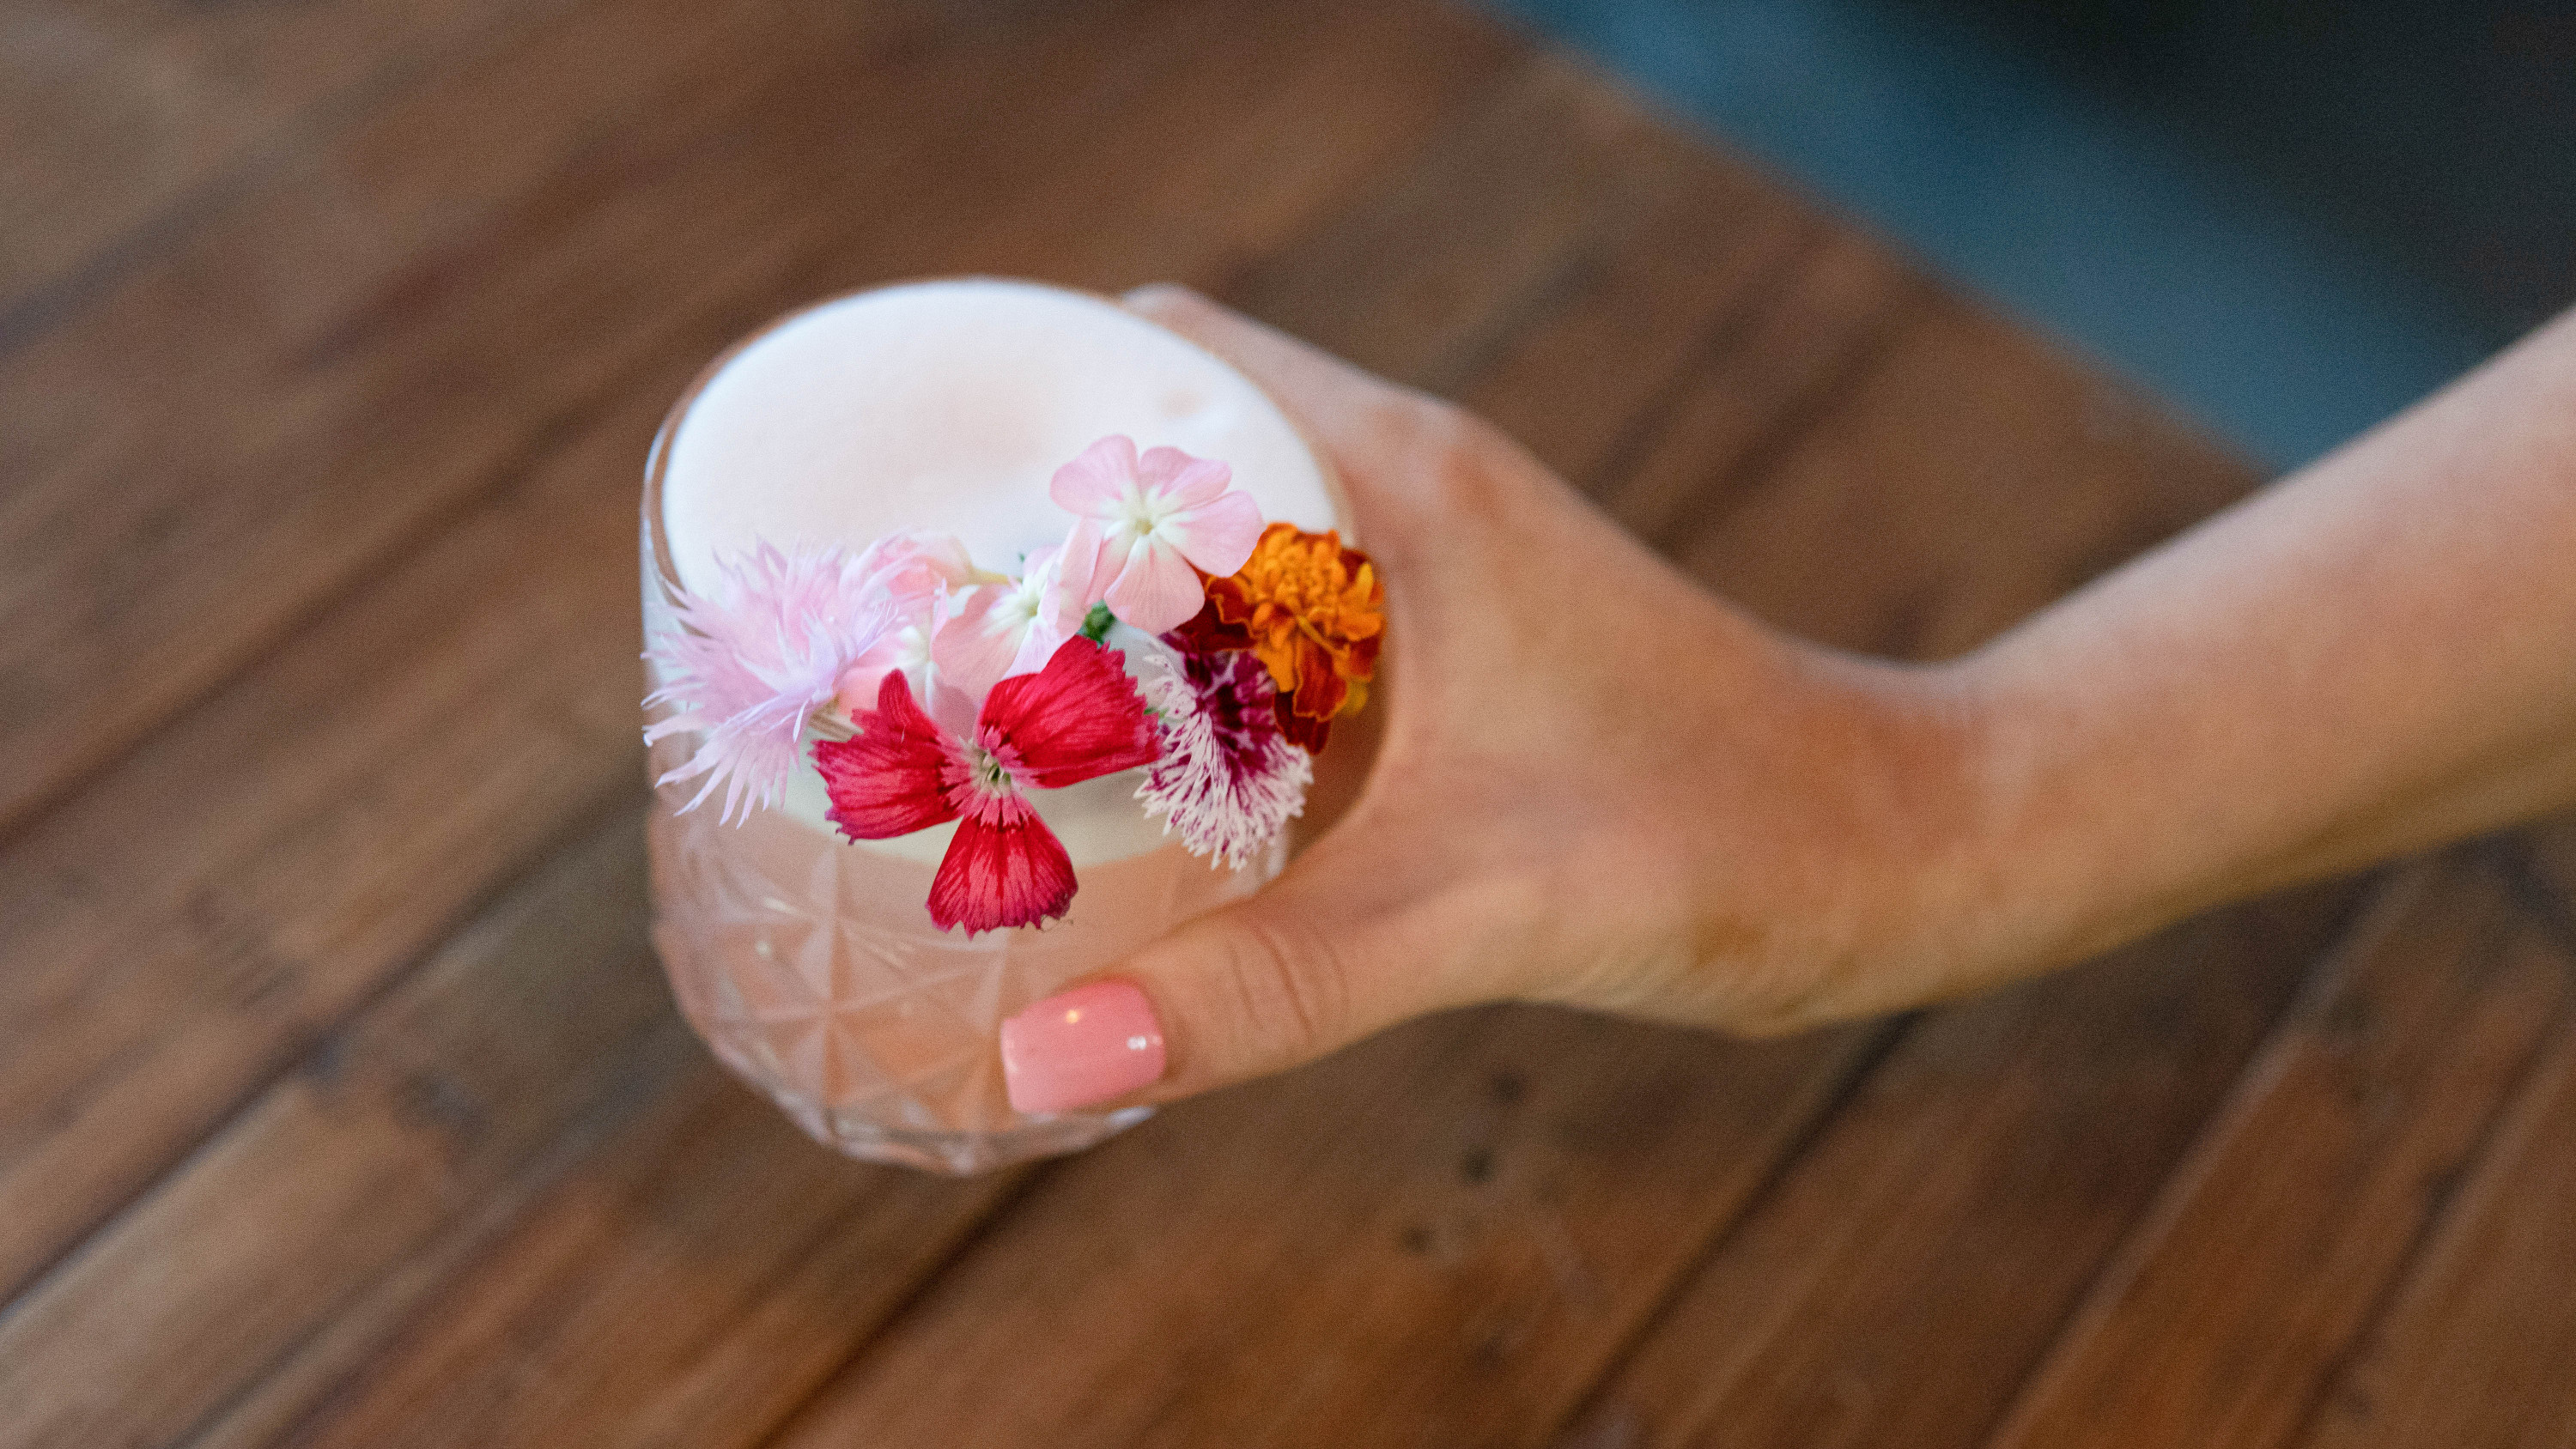 A hand holding a pink cocktail in a short glass, adorned with flowers